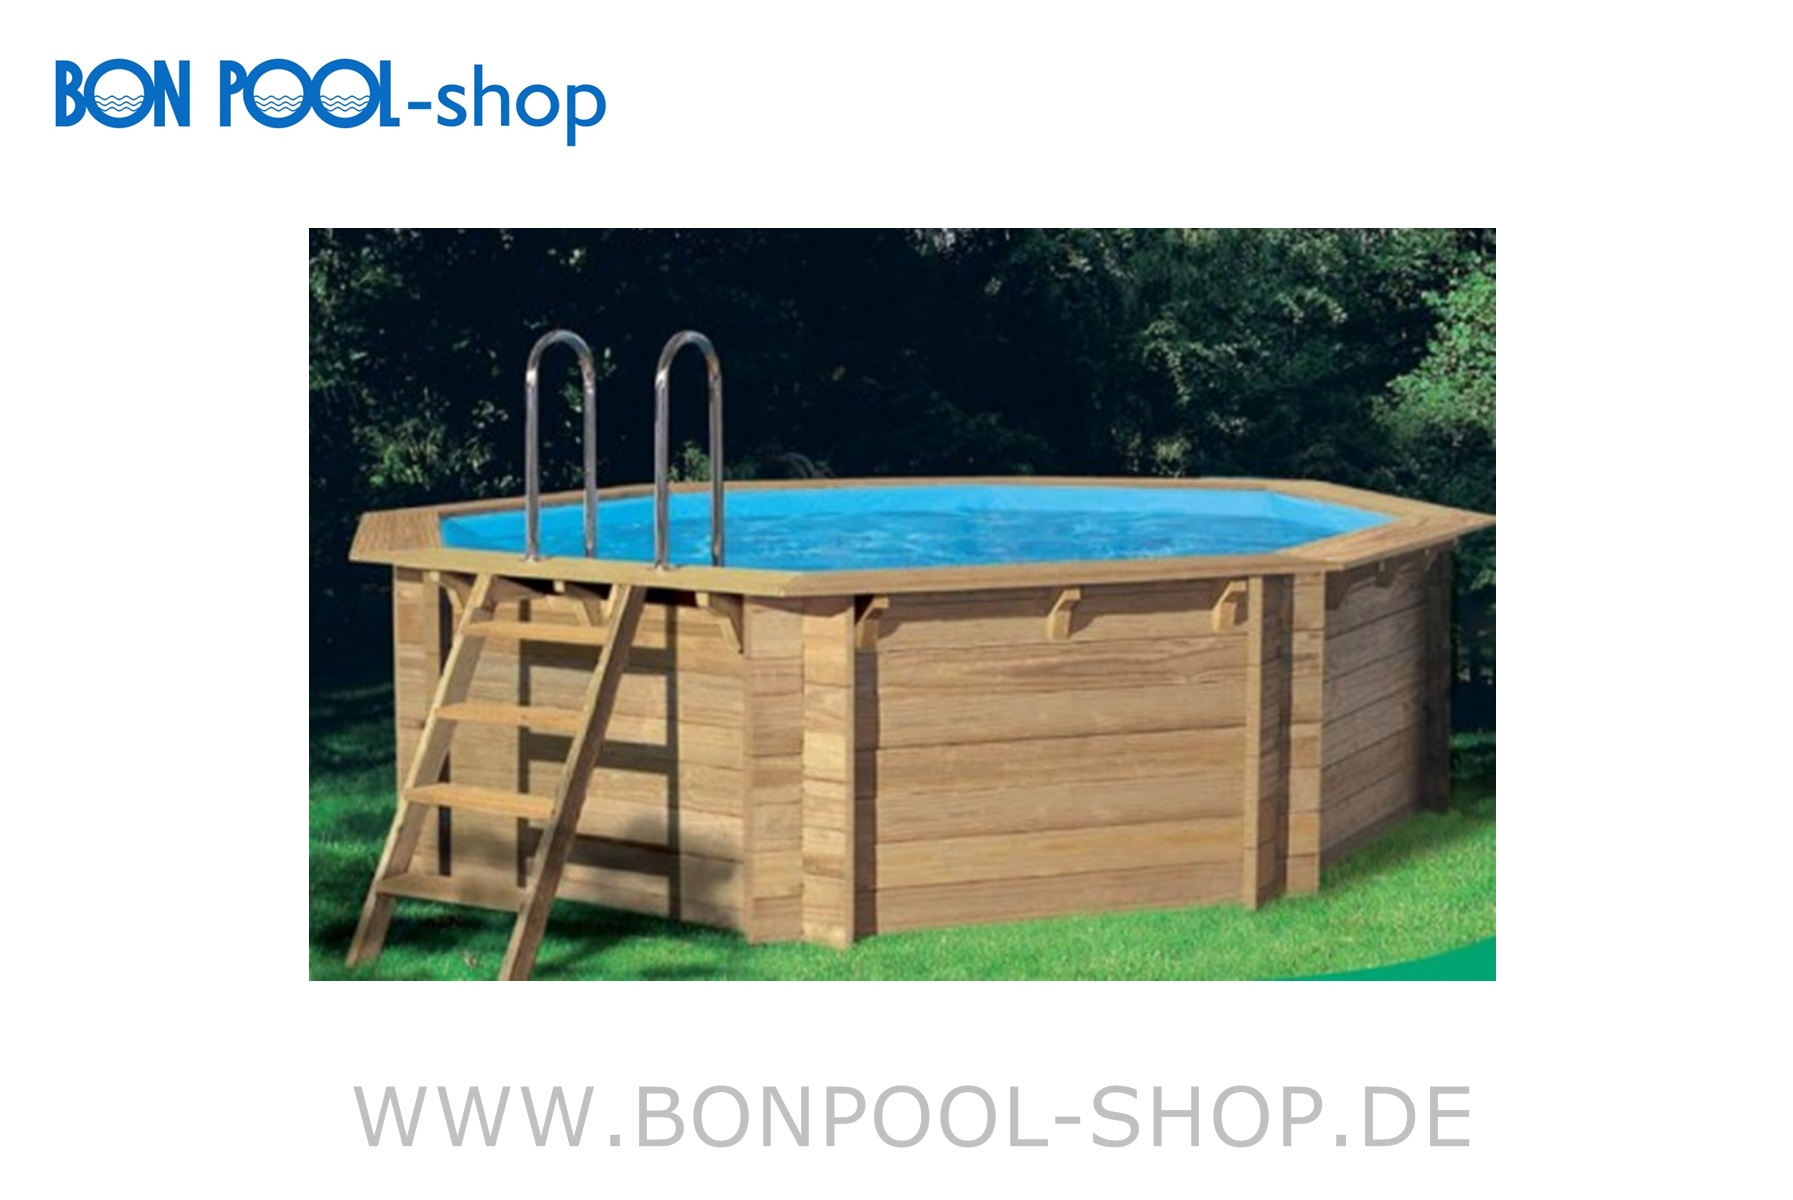 Holzpool tropic octo 414 komplett set bon pool for Piscine tropic octo 414